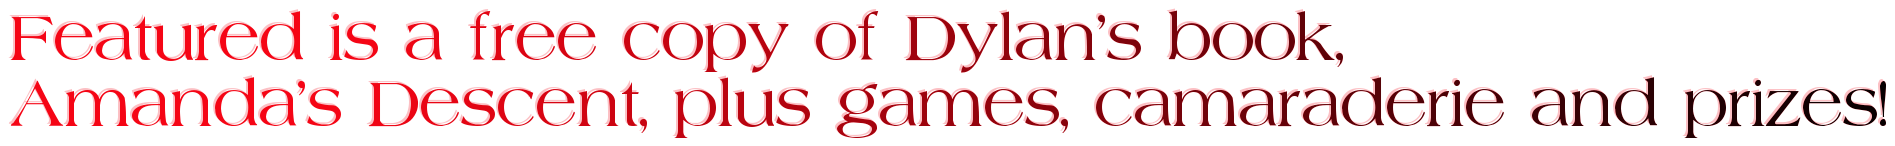 Featured is a free copy of Dylan's book,  Amanda's Descent, plus games, camaraderie and prizes!